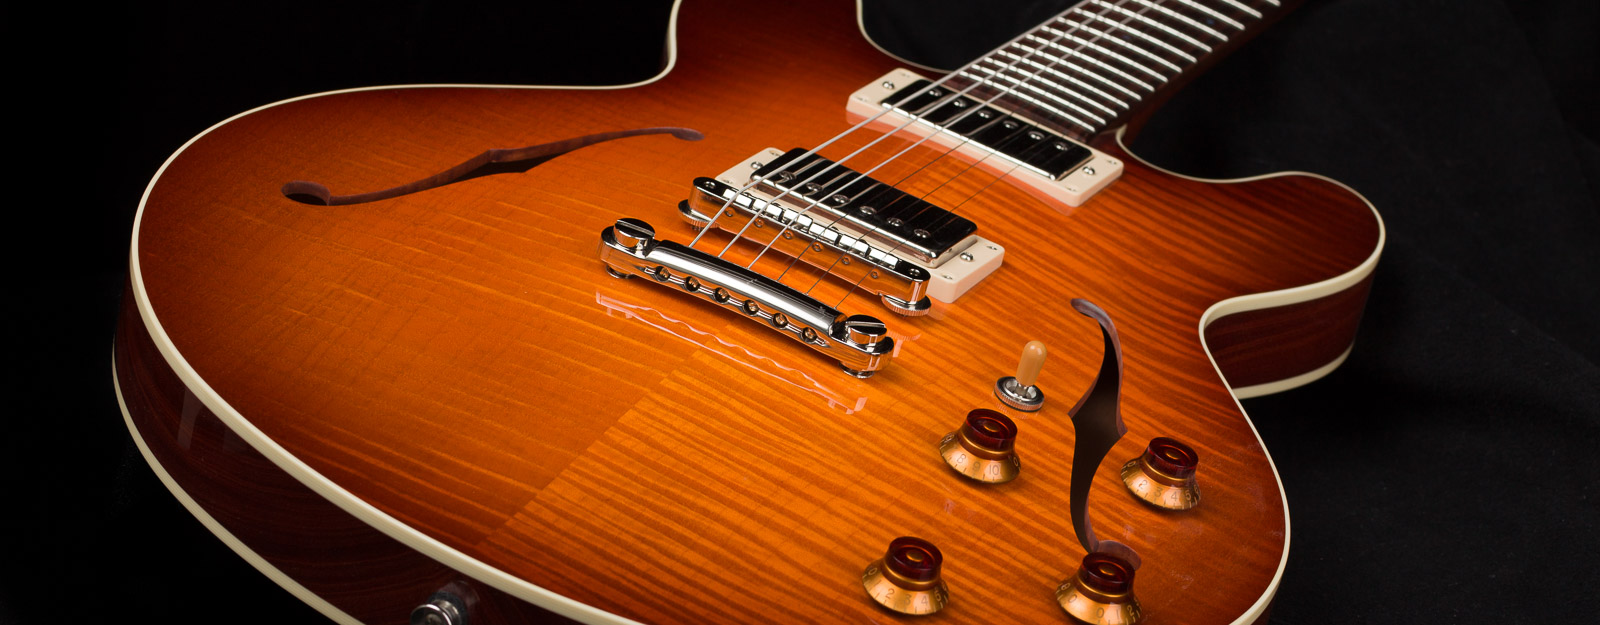 Collings Electric Guitars Faq Need To Know The Parts Of Guitar